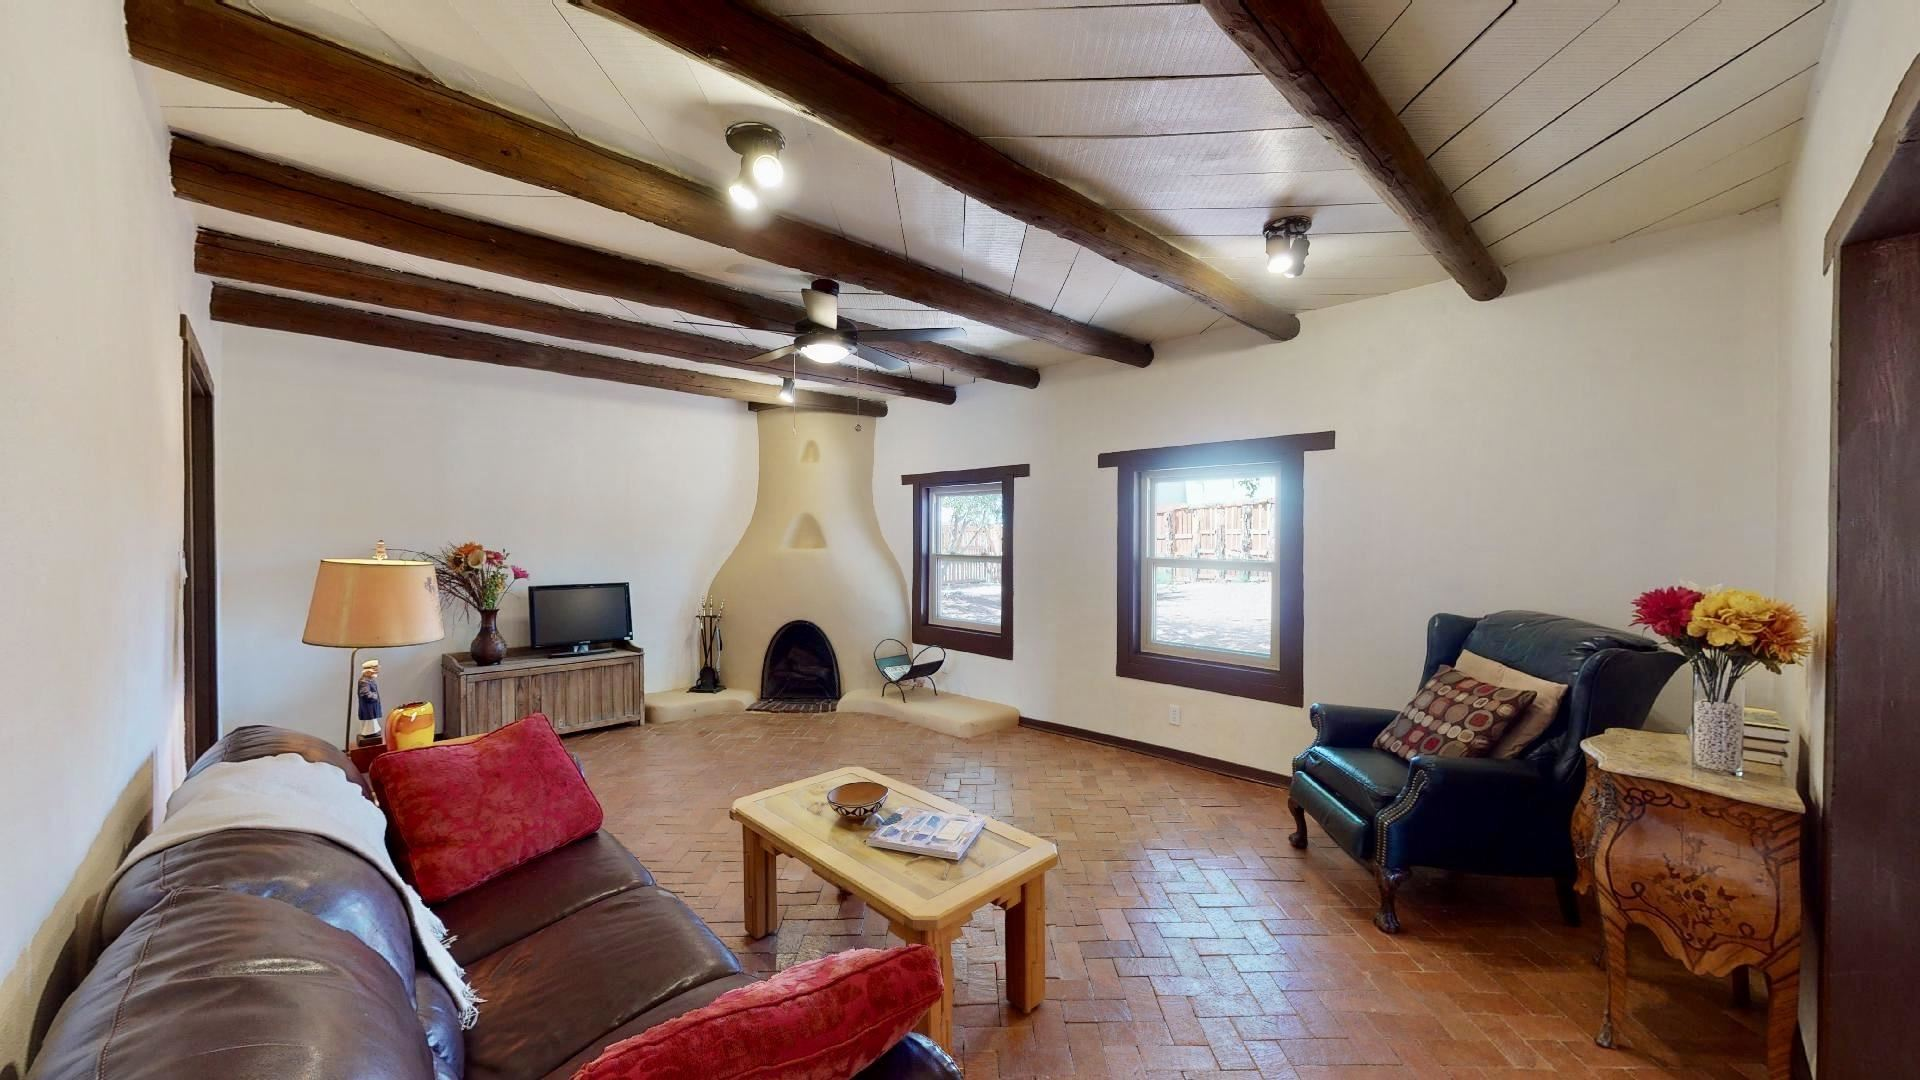 Photo of 7 TIERRA MADRE Road, Placitas, NM 87043 (MLS # 968665)